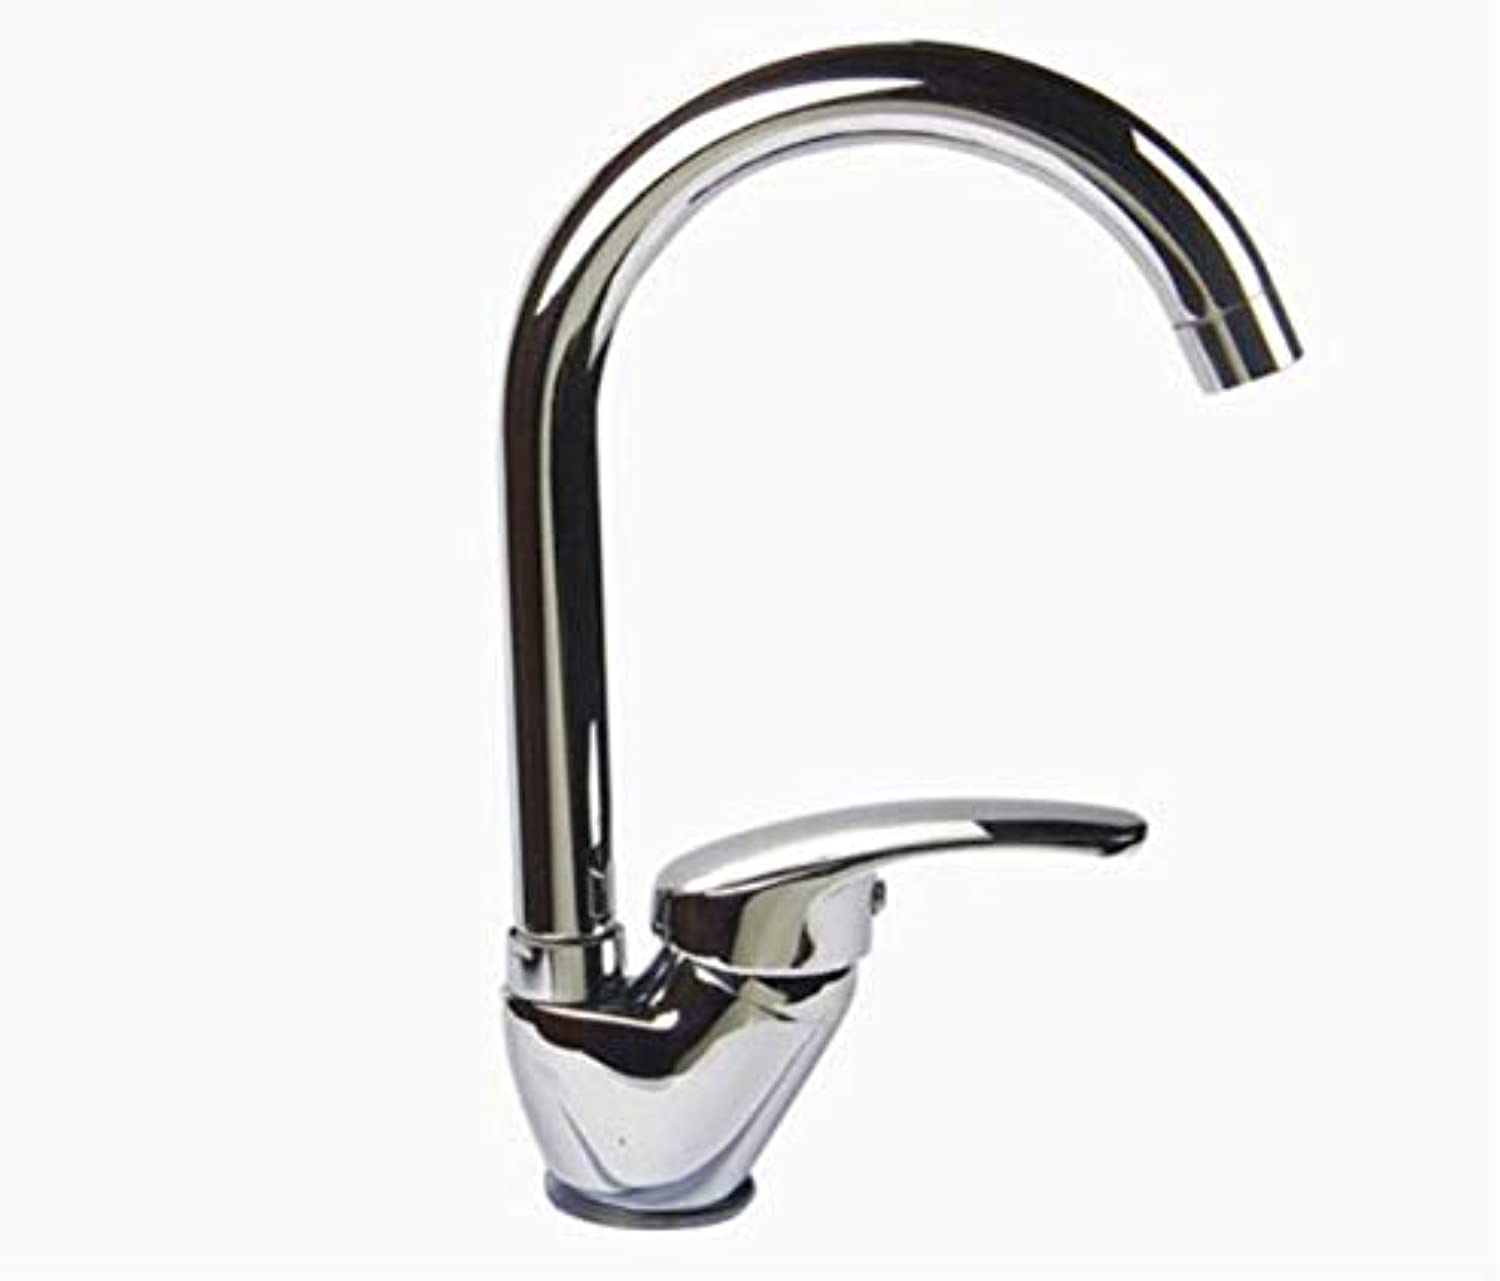 Taps Kitchen Sinktaps Mixer Swivel Faucet Sink Kitchen Basin Hot and Cold Water Faucet